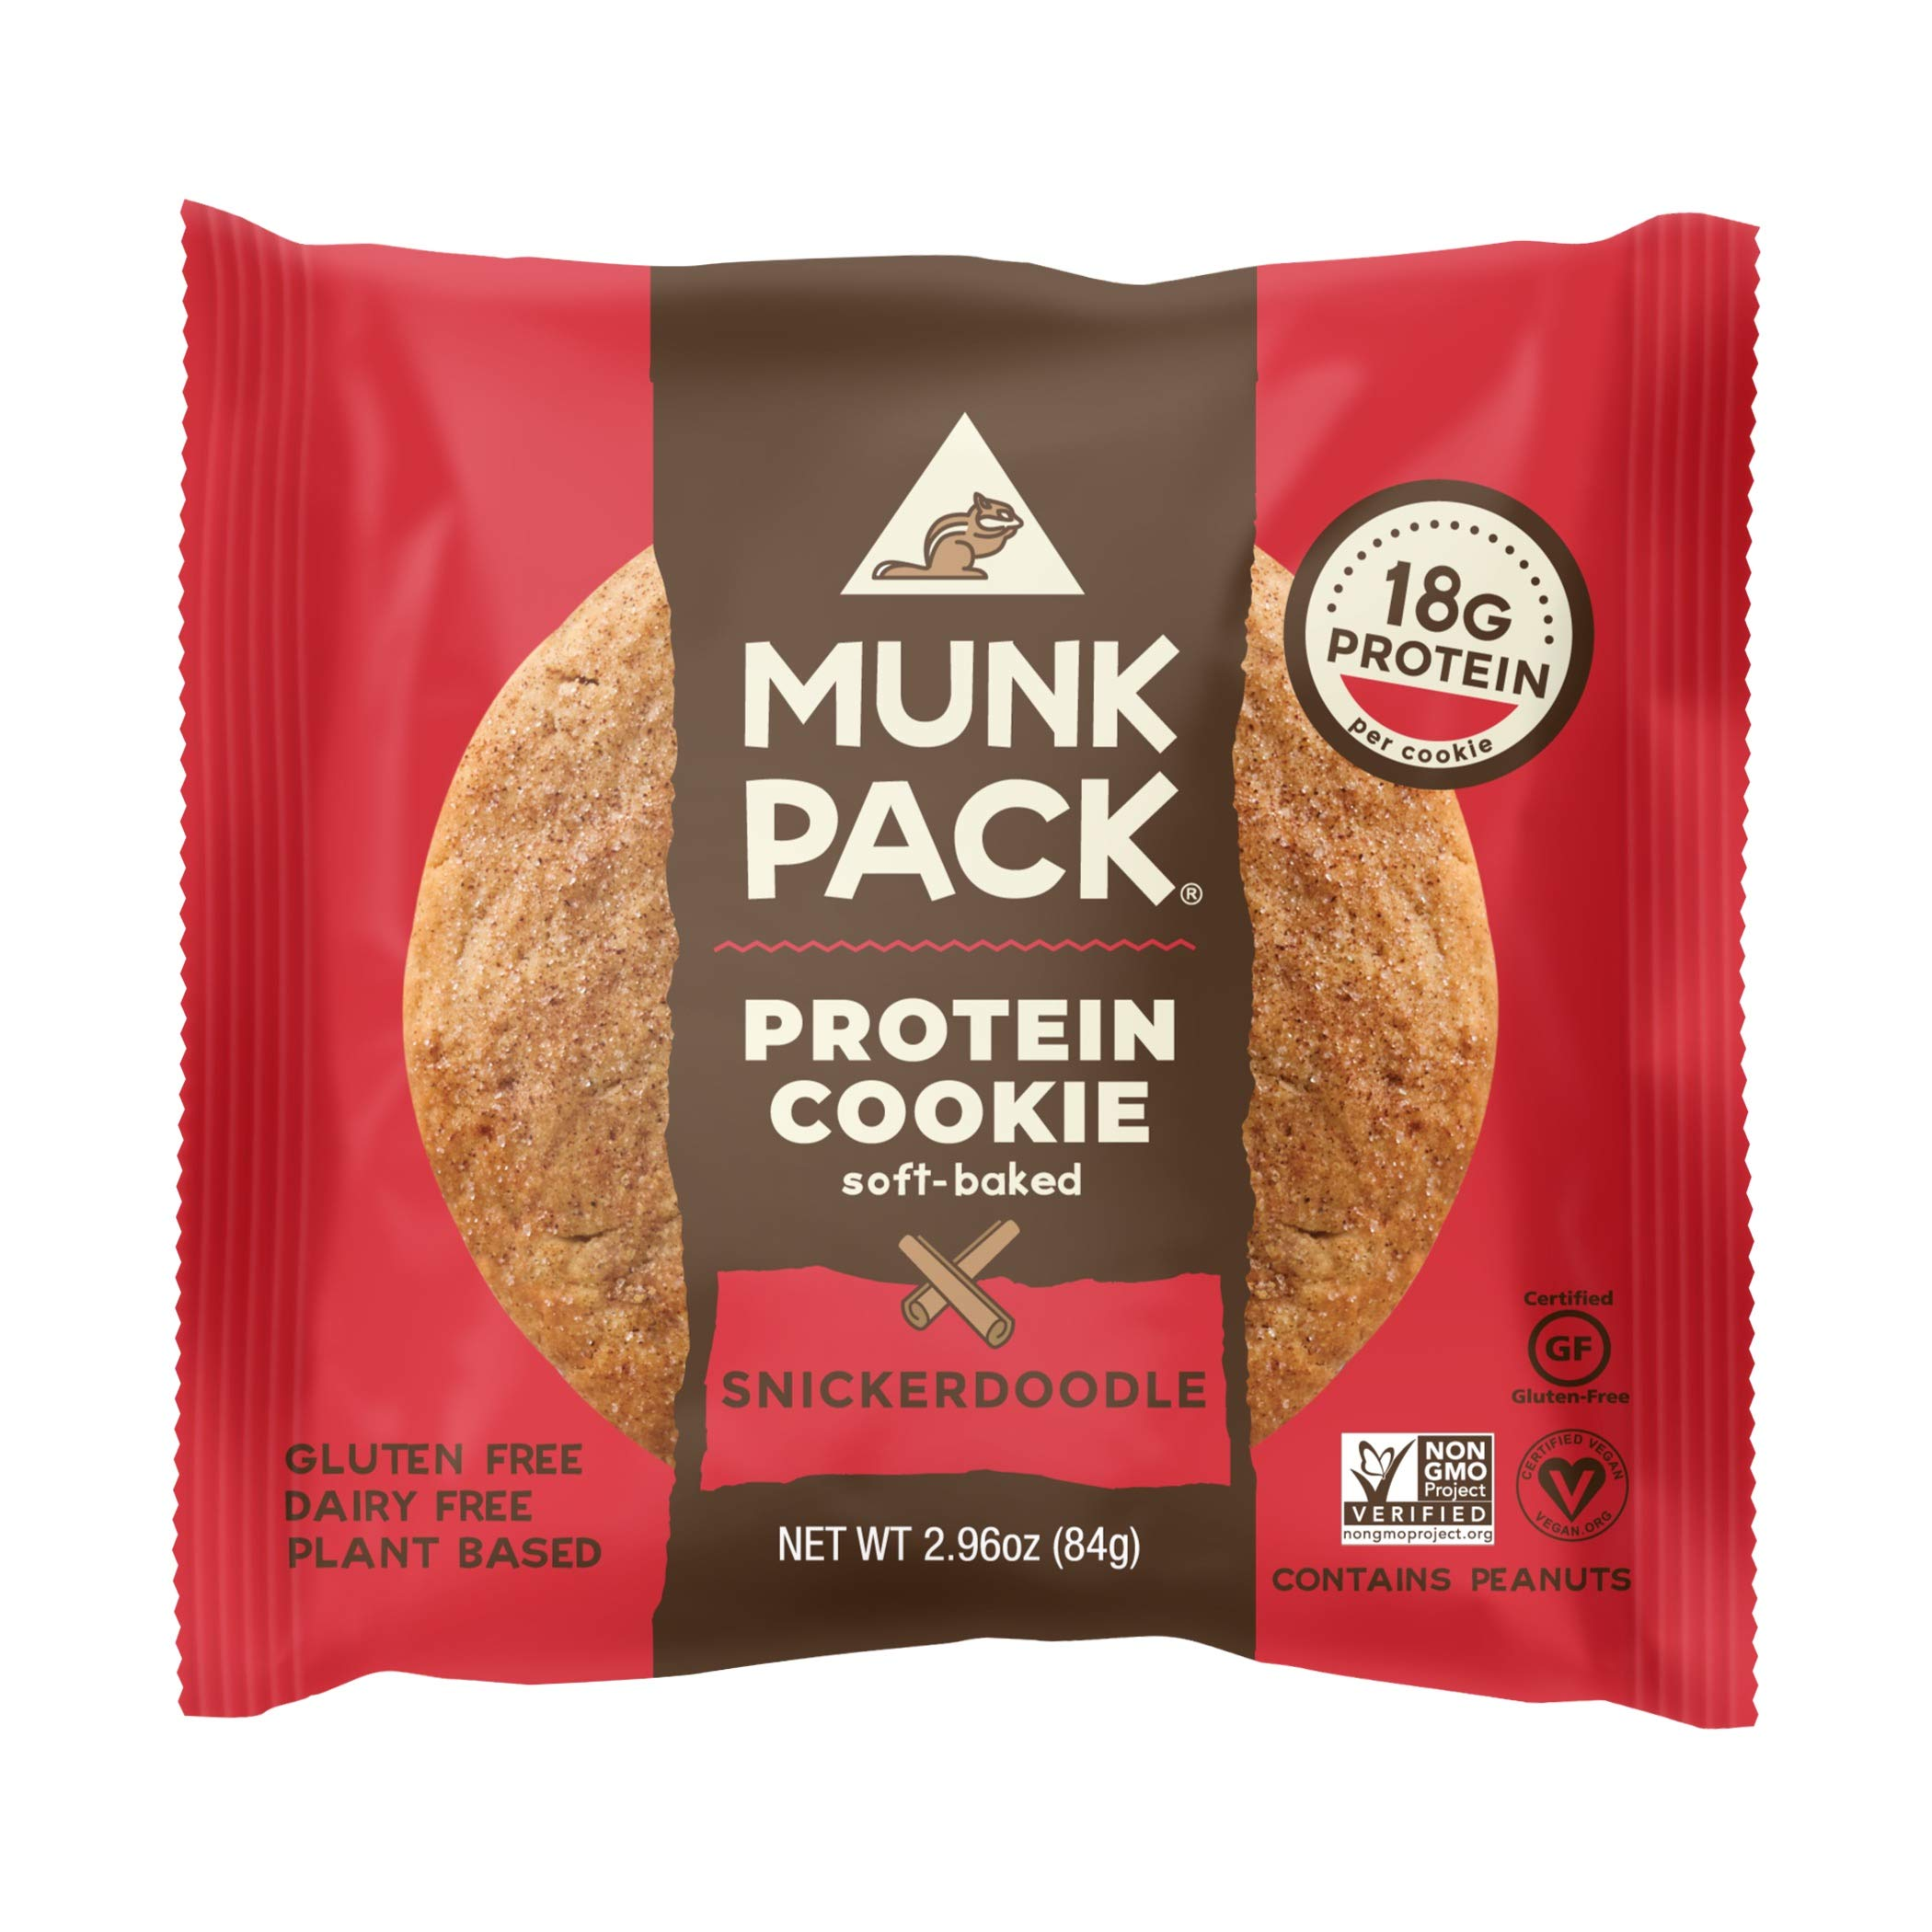 Munk Pack Protein Cookie | Snickerdoodle | 18G Protein | Vegan, Gluten Free, Dairy Free, Soy Free, Soft-Baked | 2.96oz, 12-Pack